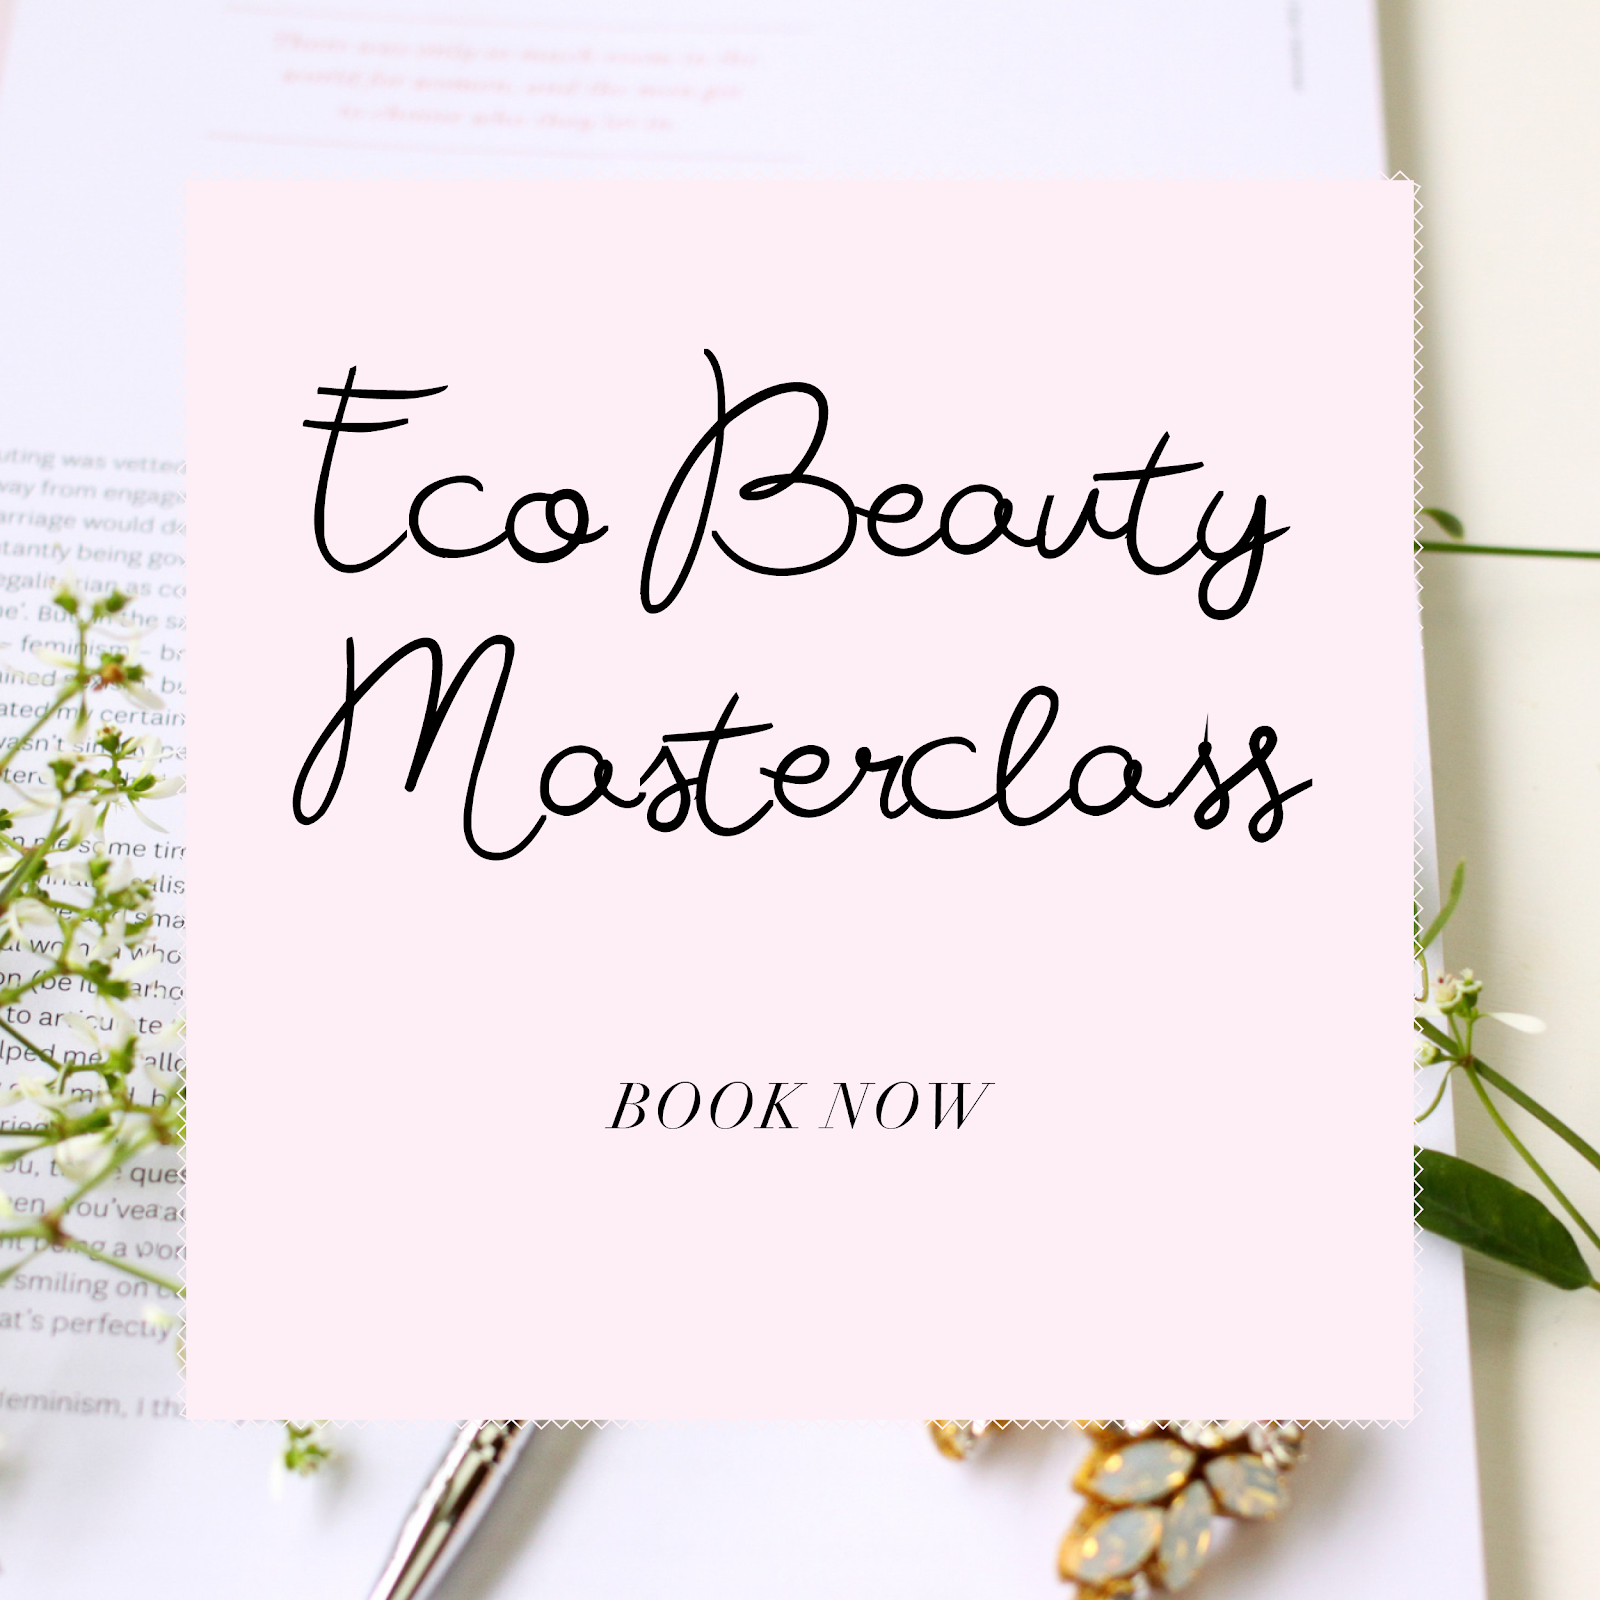 Eco Beauty Masterclass